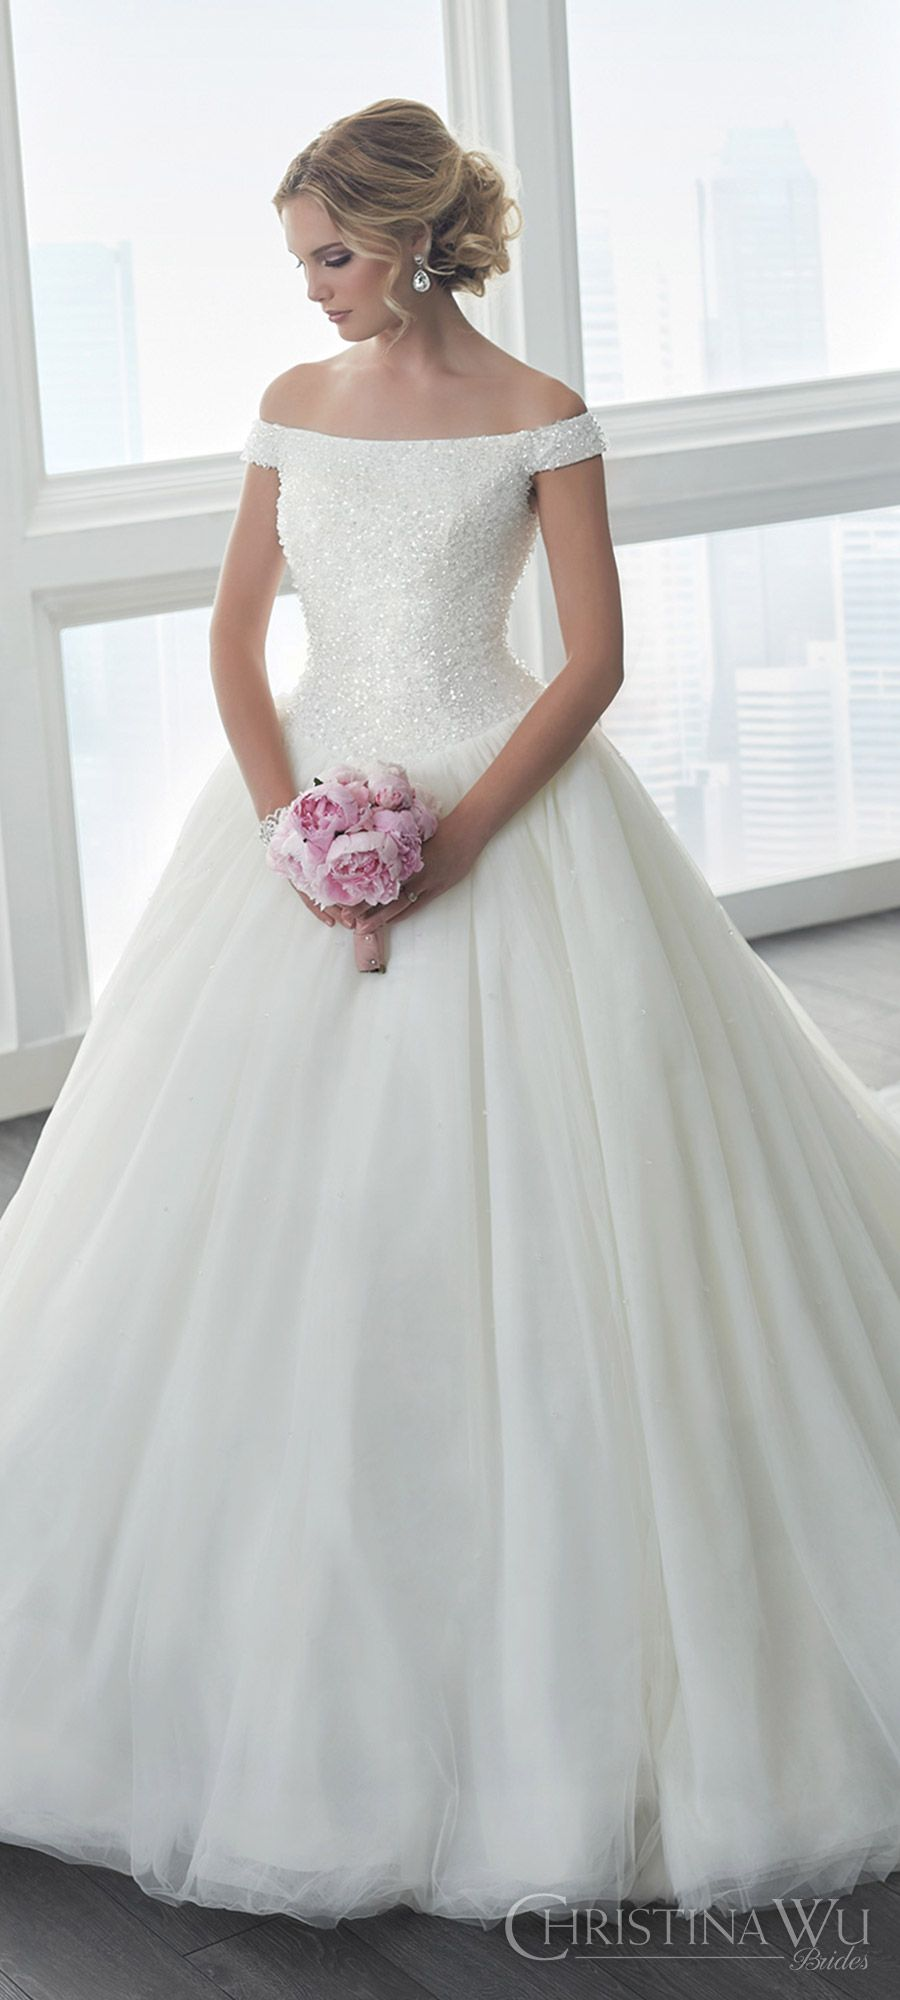 Cute christina wu brides spring bridal off shoulder heavily beaded bodice ball gown wedding dress